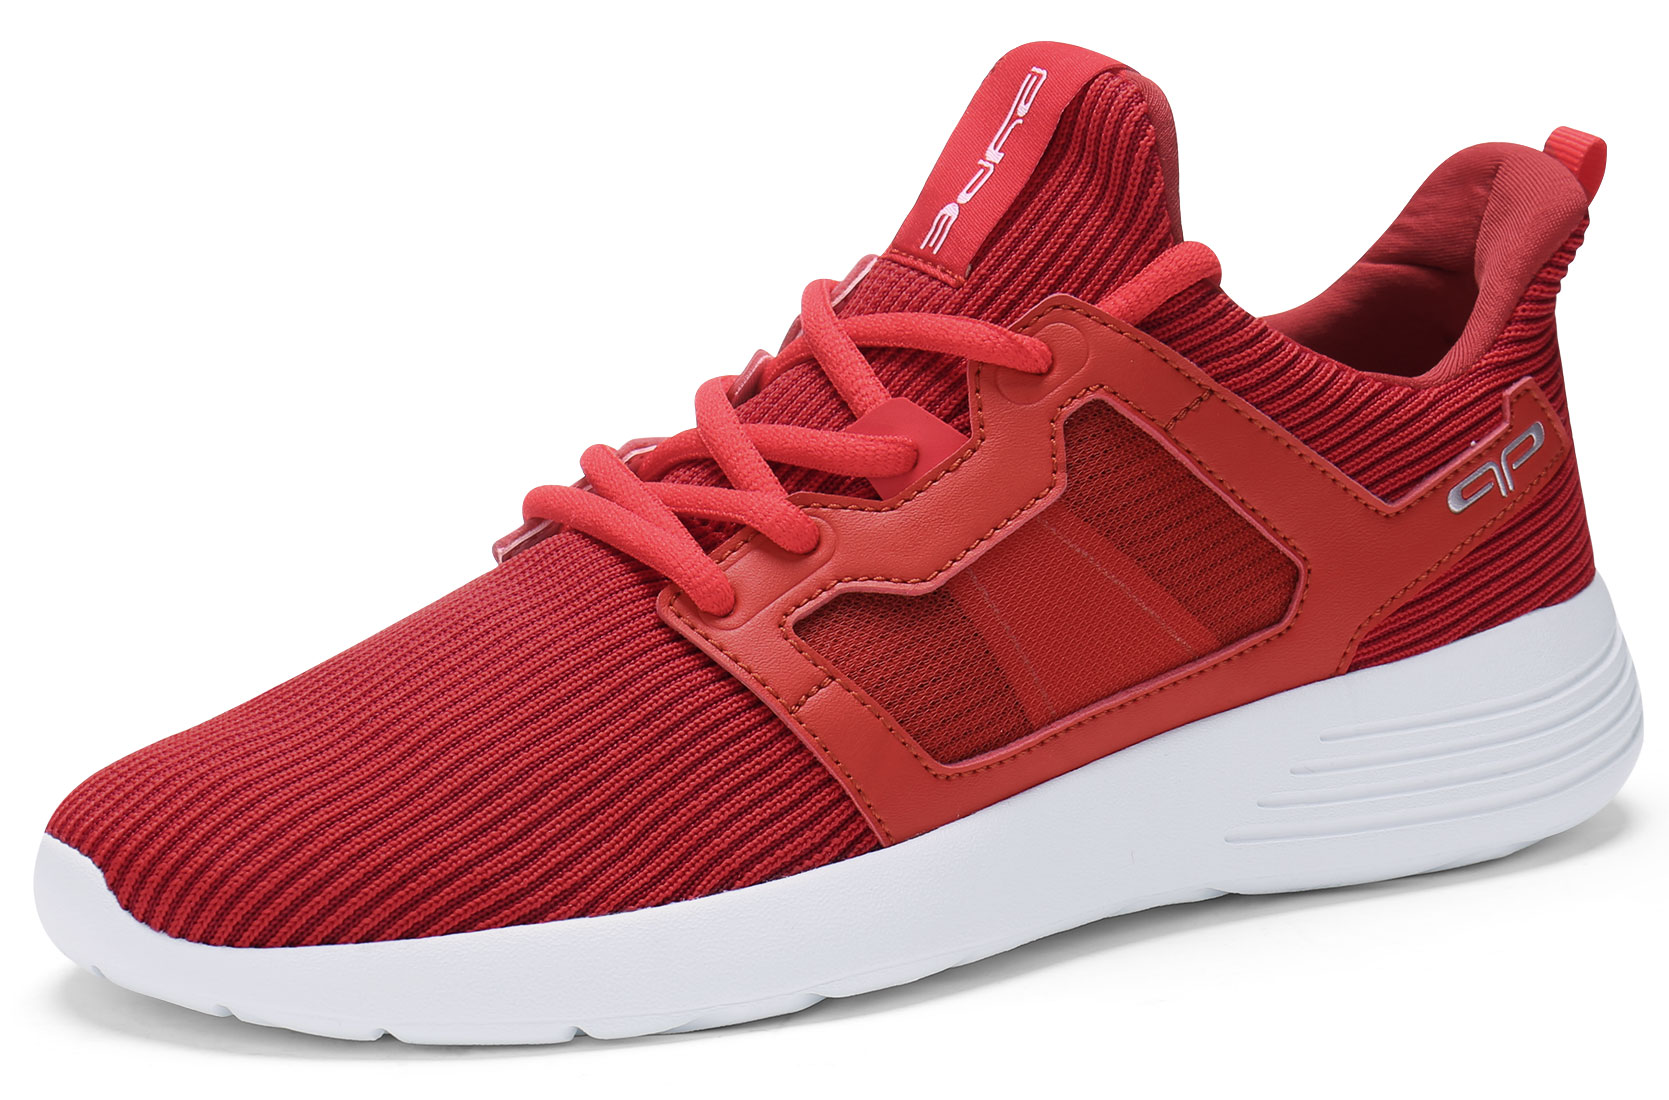 PYPE Women Lightweight Lace Up Mesh Training Sneakers Red US 9